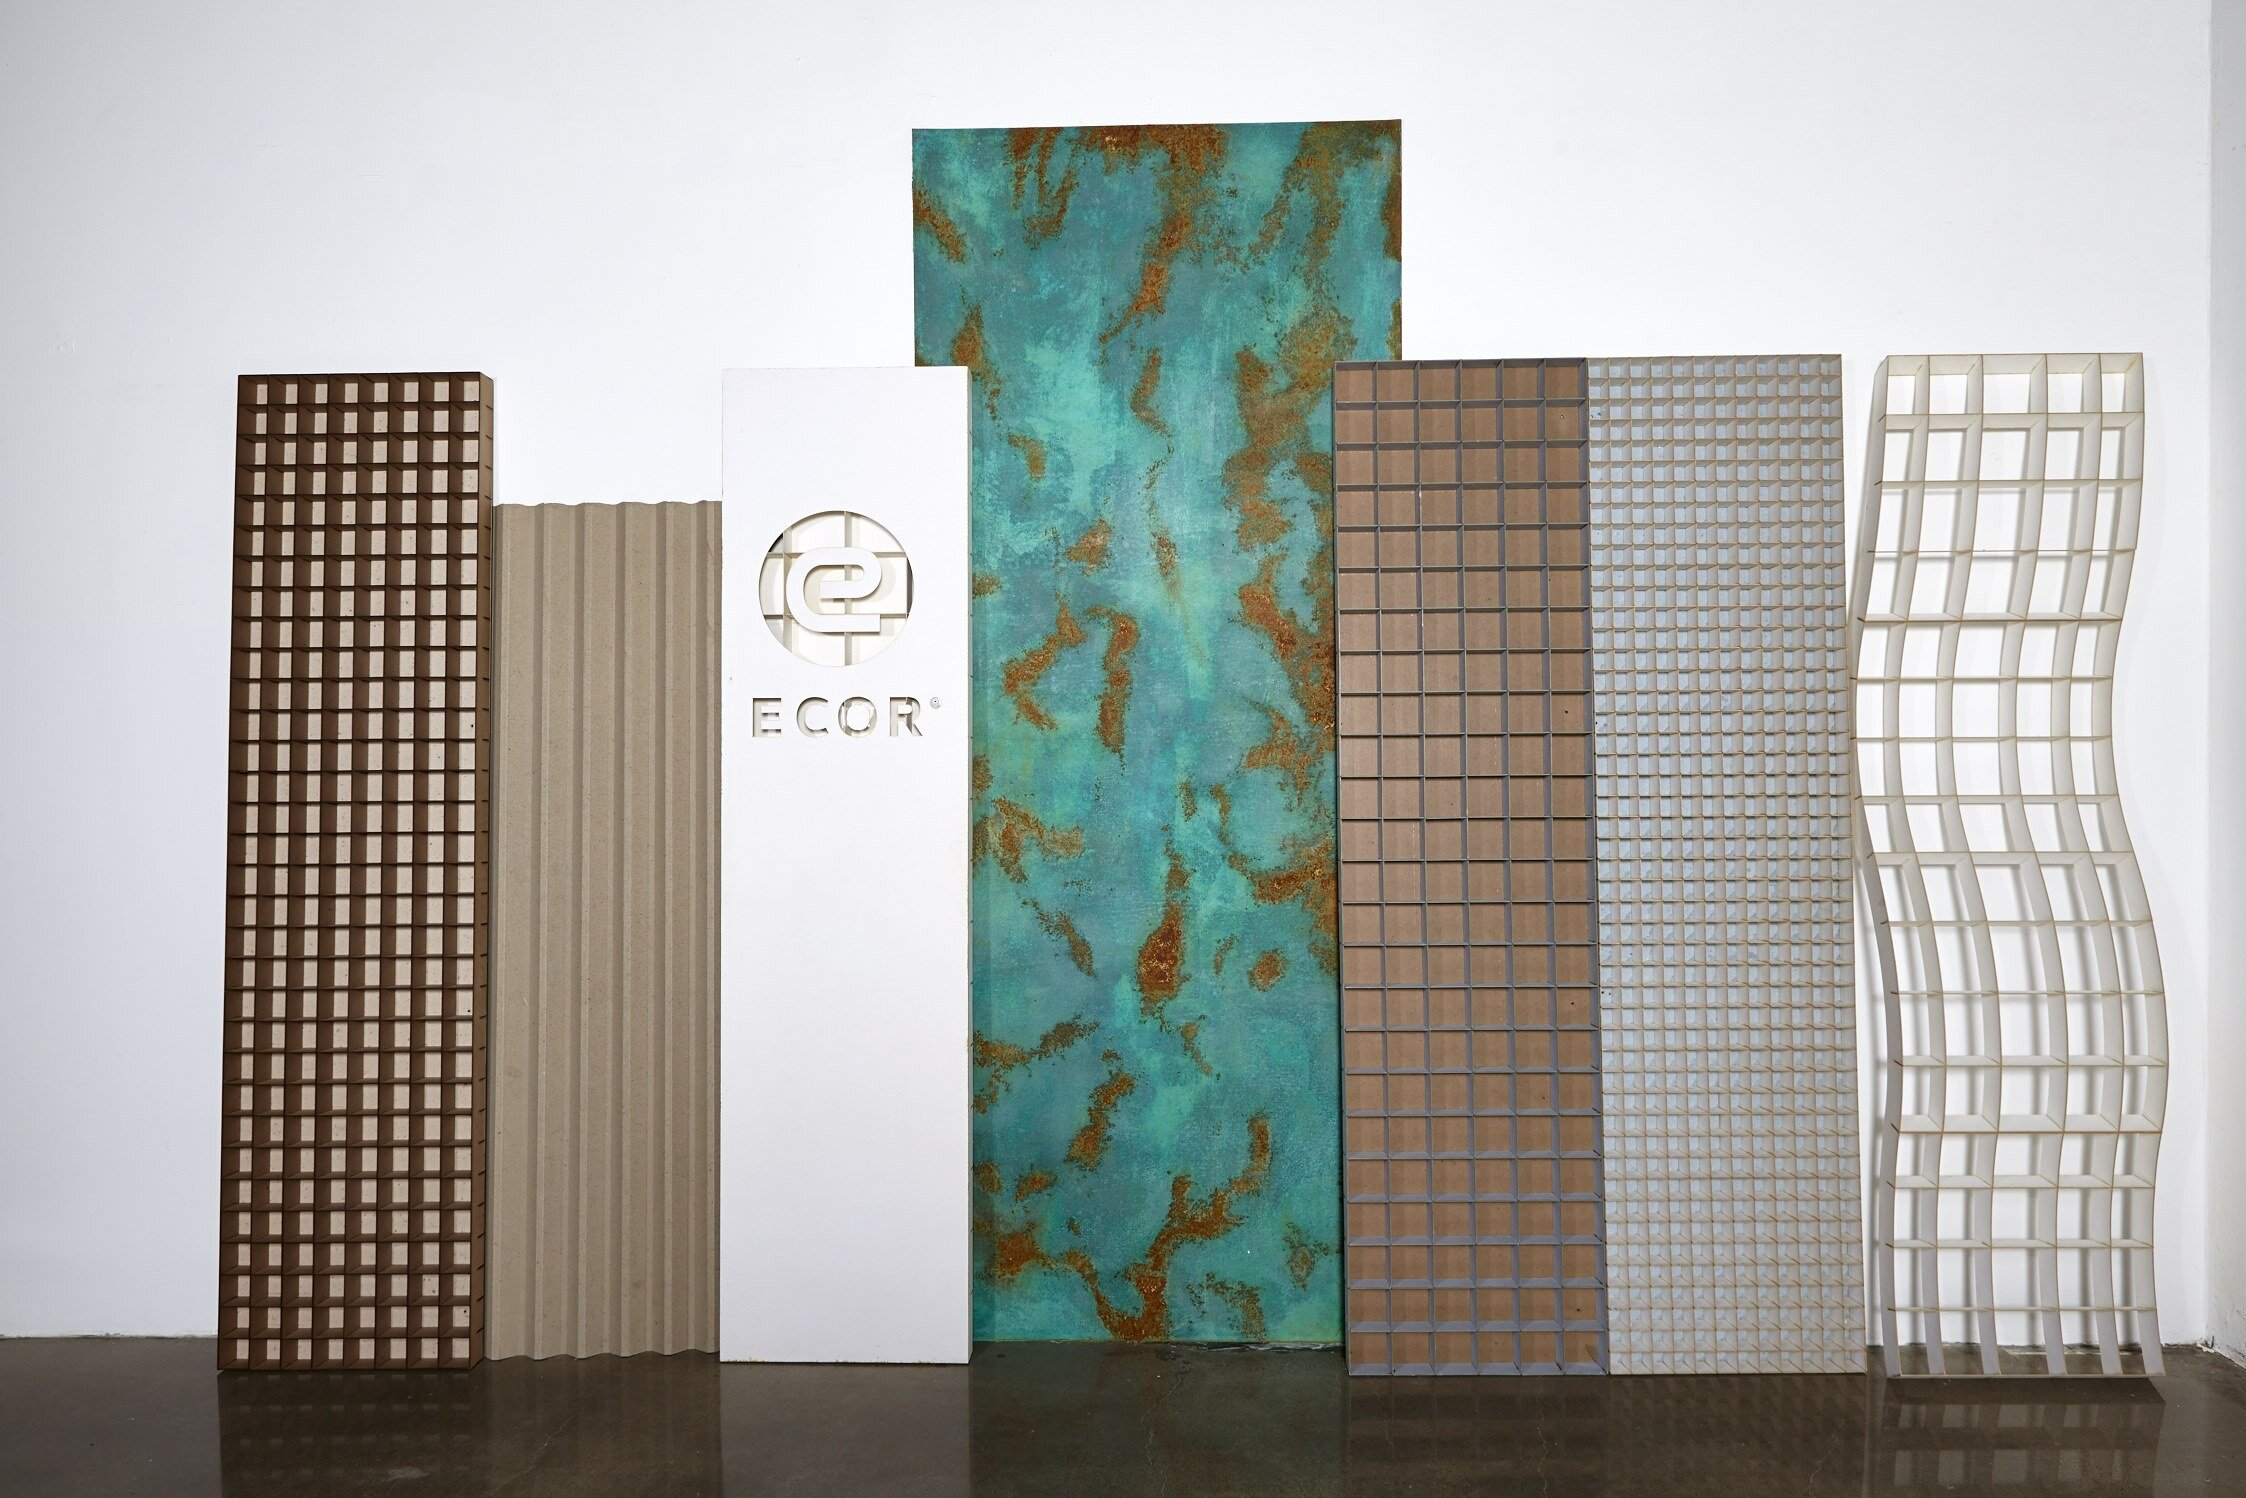 The versatile finishes, forms and detailing that can be created with ECOR's Fiber Alloys